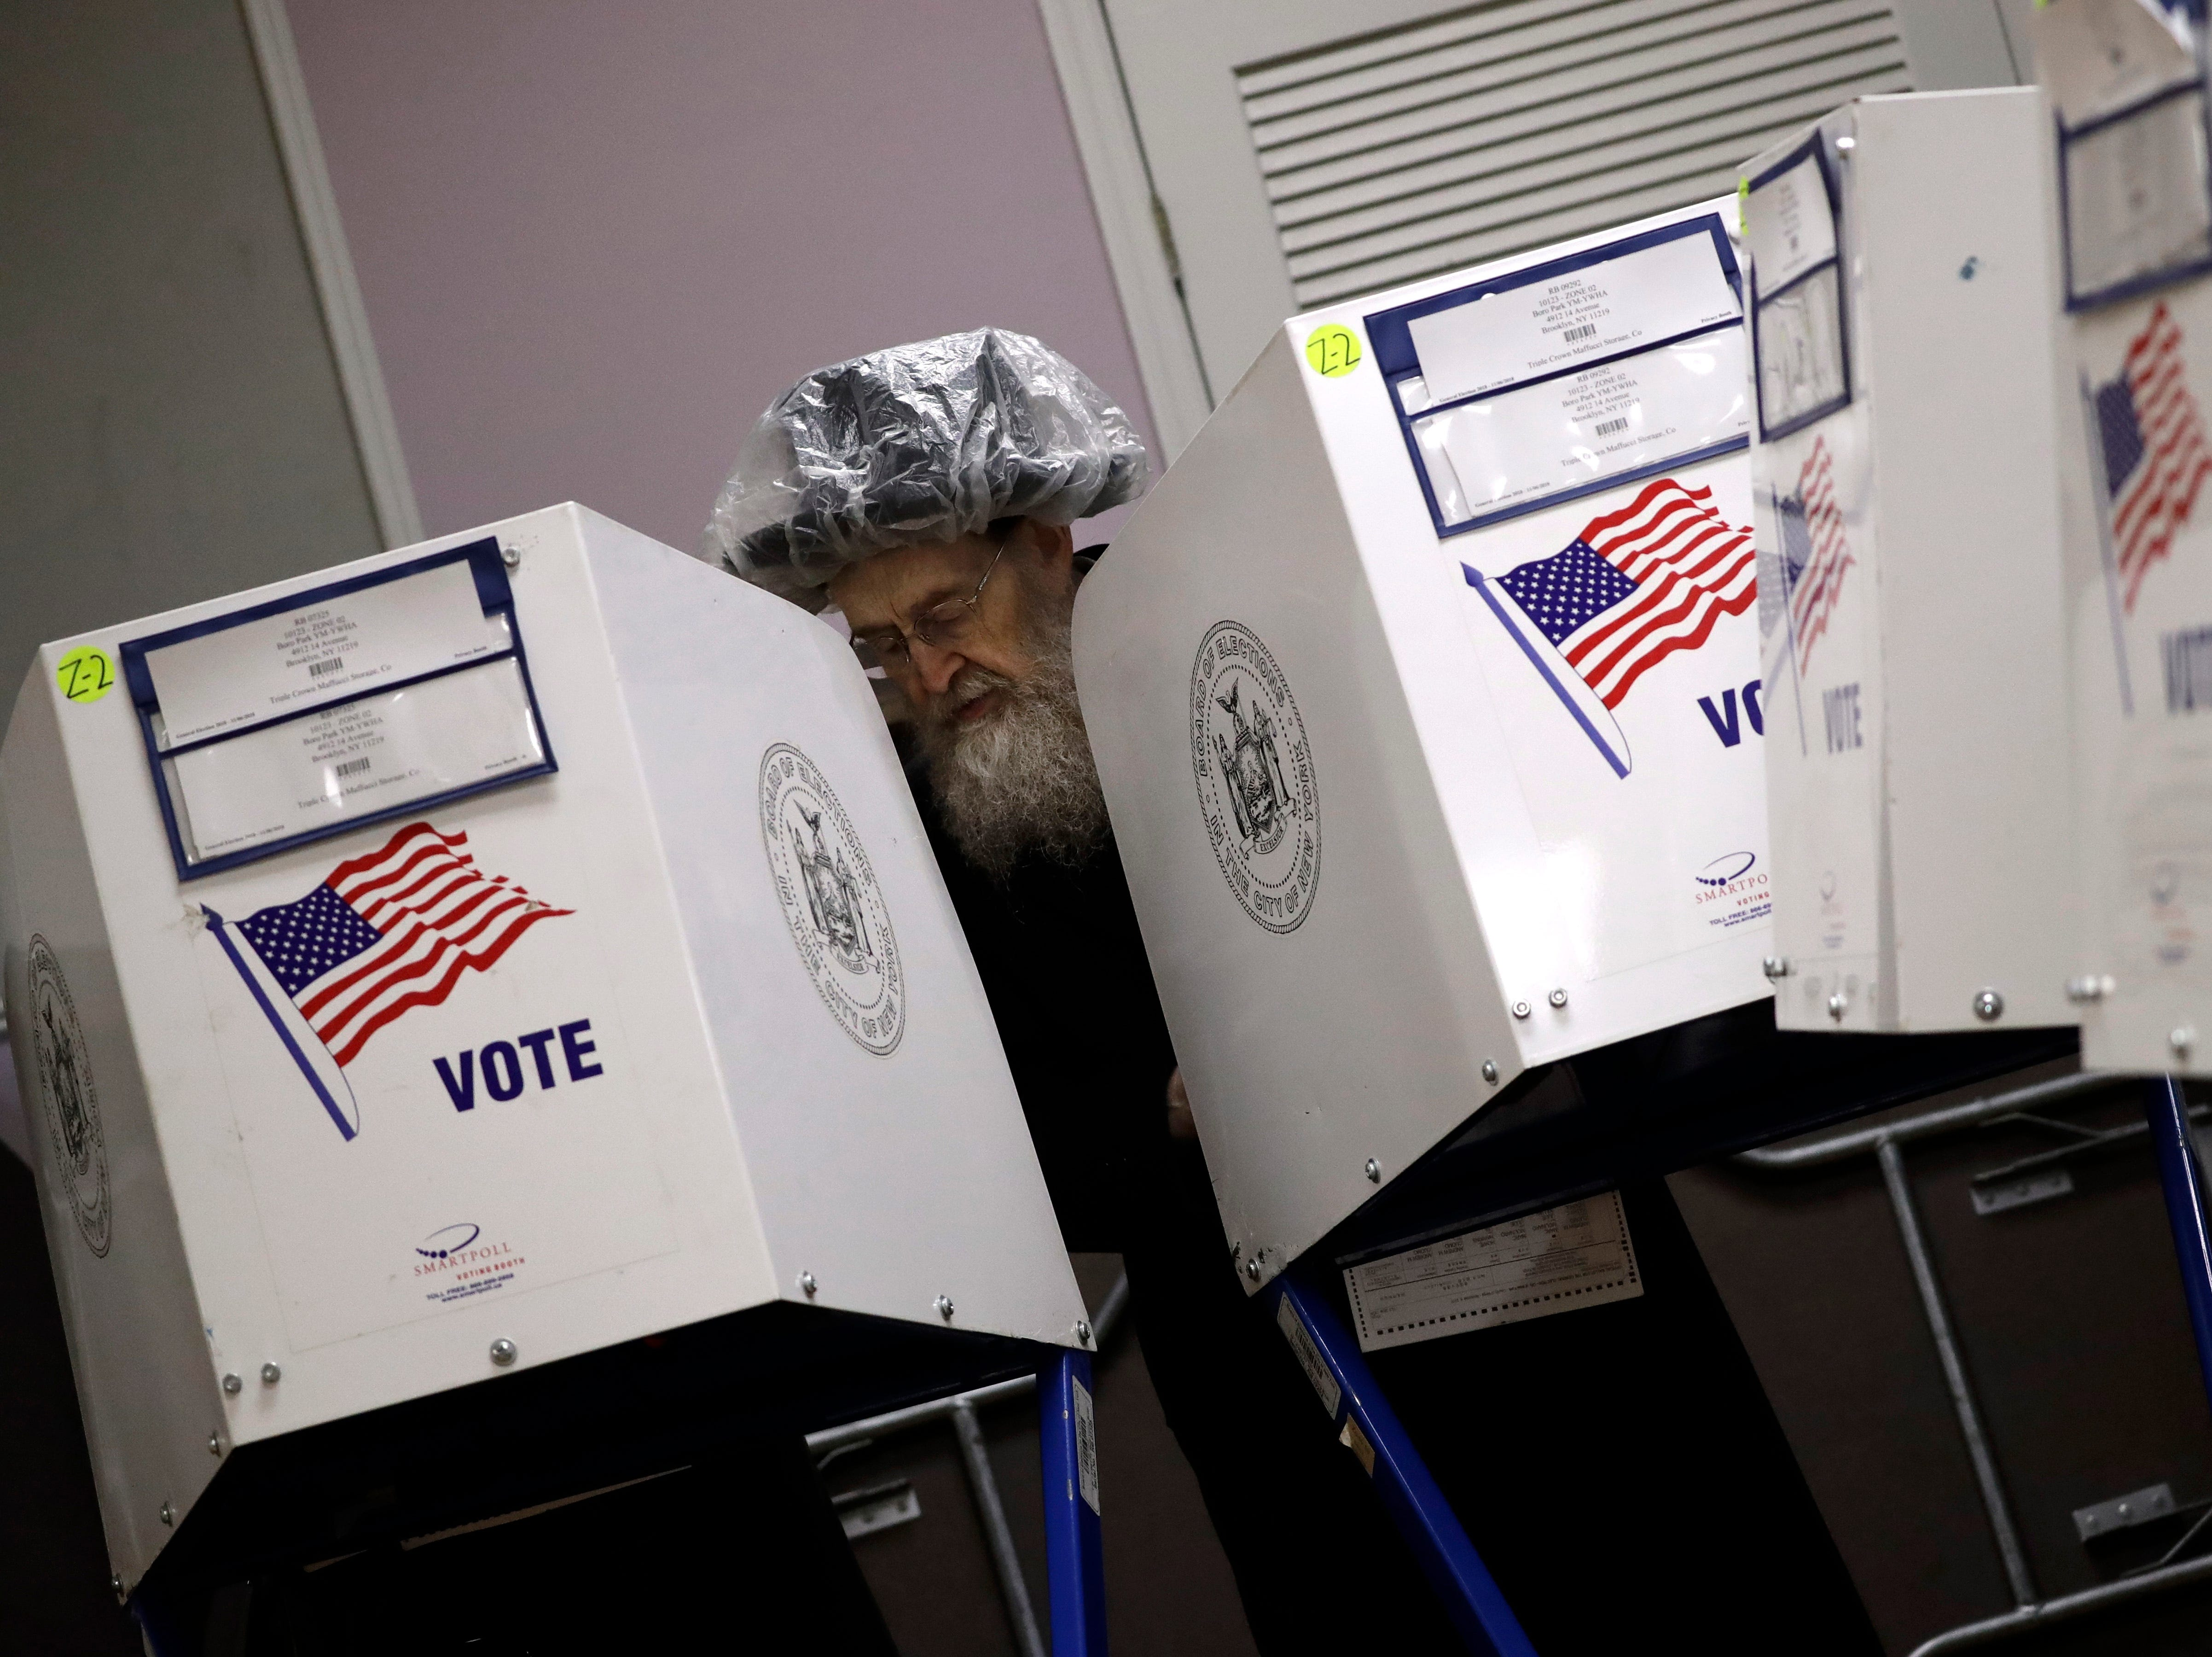 An orthodox Jewish man fills out his ballot papers at a polling center on Tuesday, Nov. 6, 2018, in Brooklyn borough of New York.